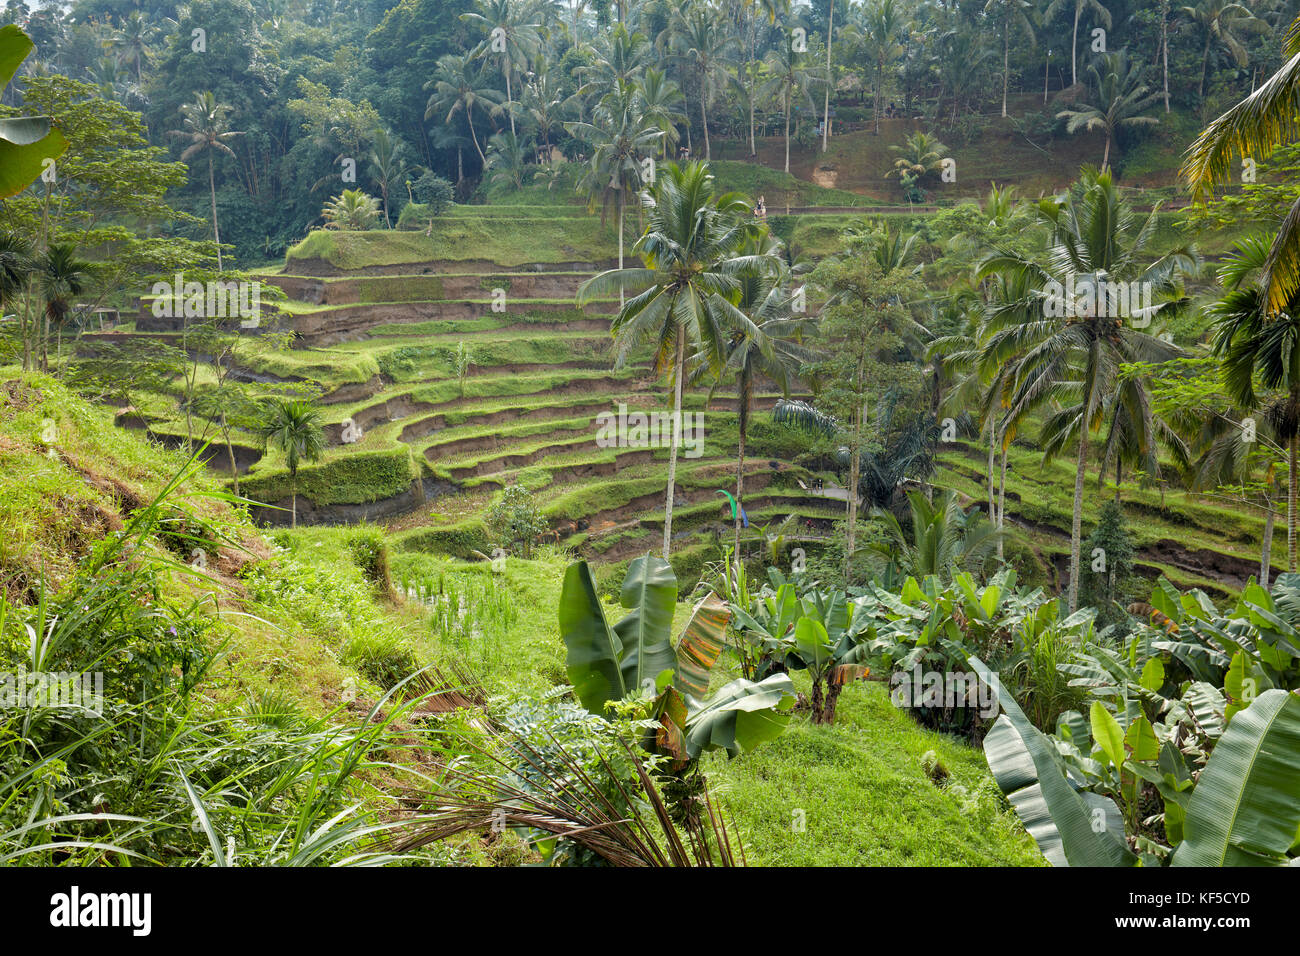 Tegalalang Rice Terrace. Tegalalang village, Bali, Indonesia. - Stock Image